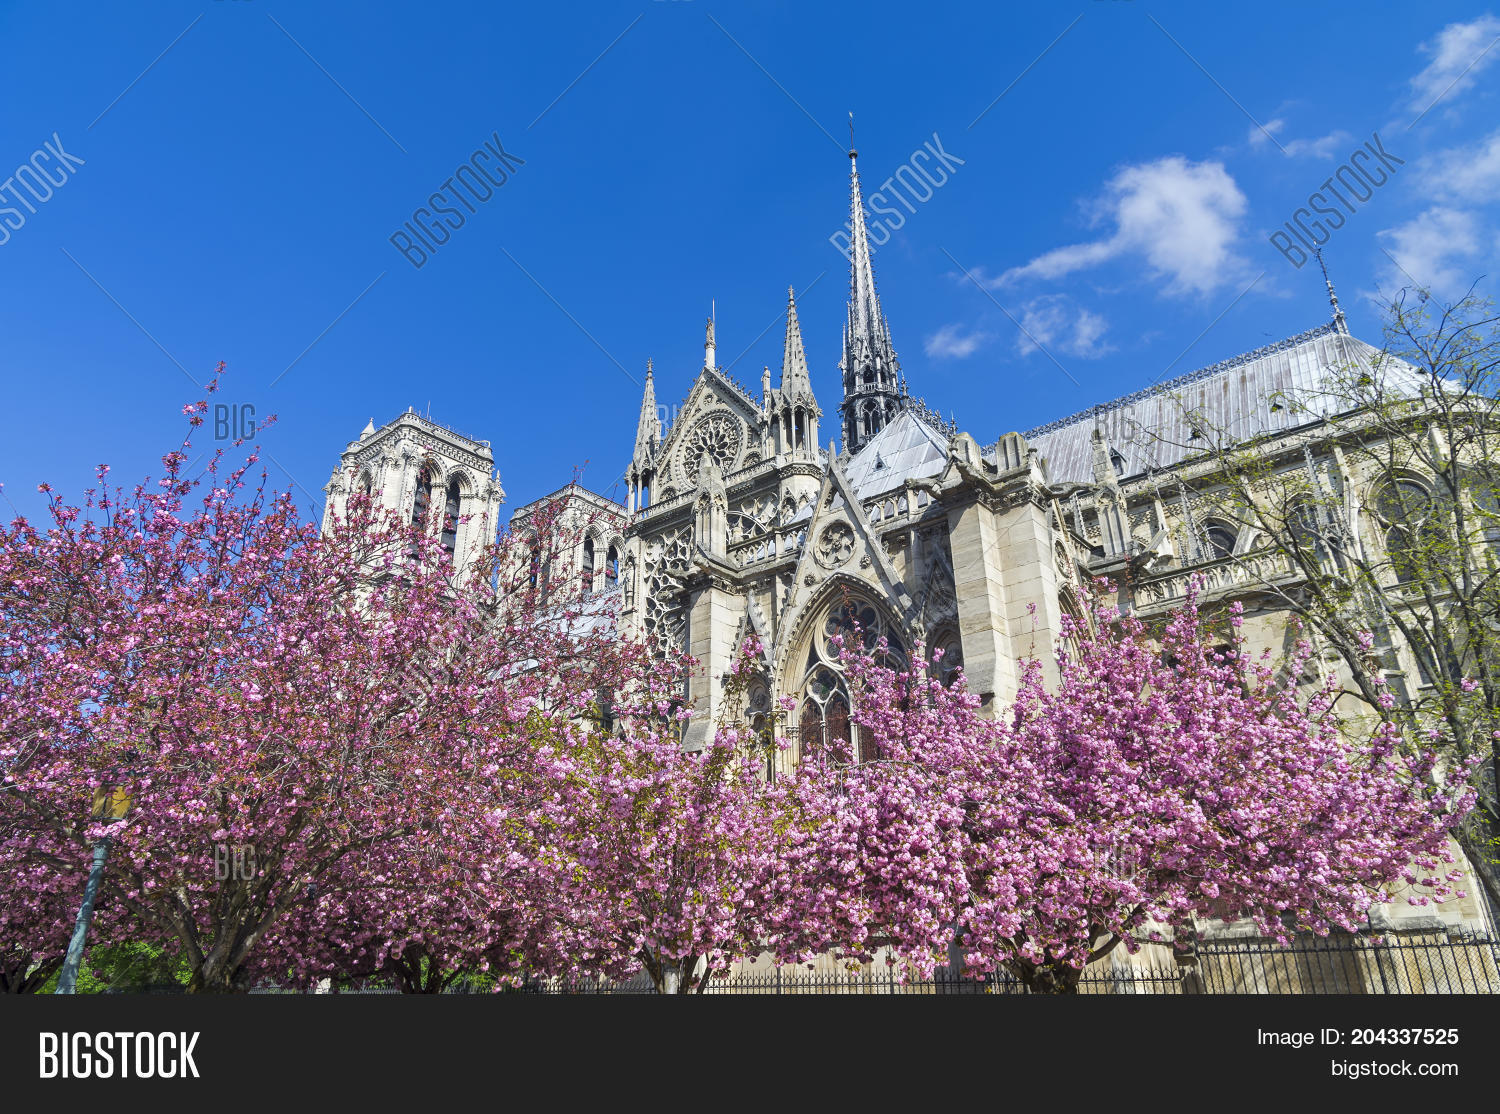 Flowering trees judas image photo free trial bigstock flowering trees judas tree on the background of notre dame cathedral a sunny izmirmasajfo